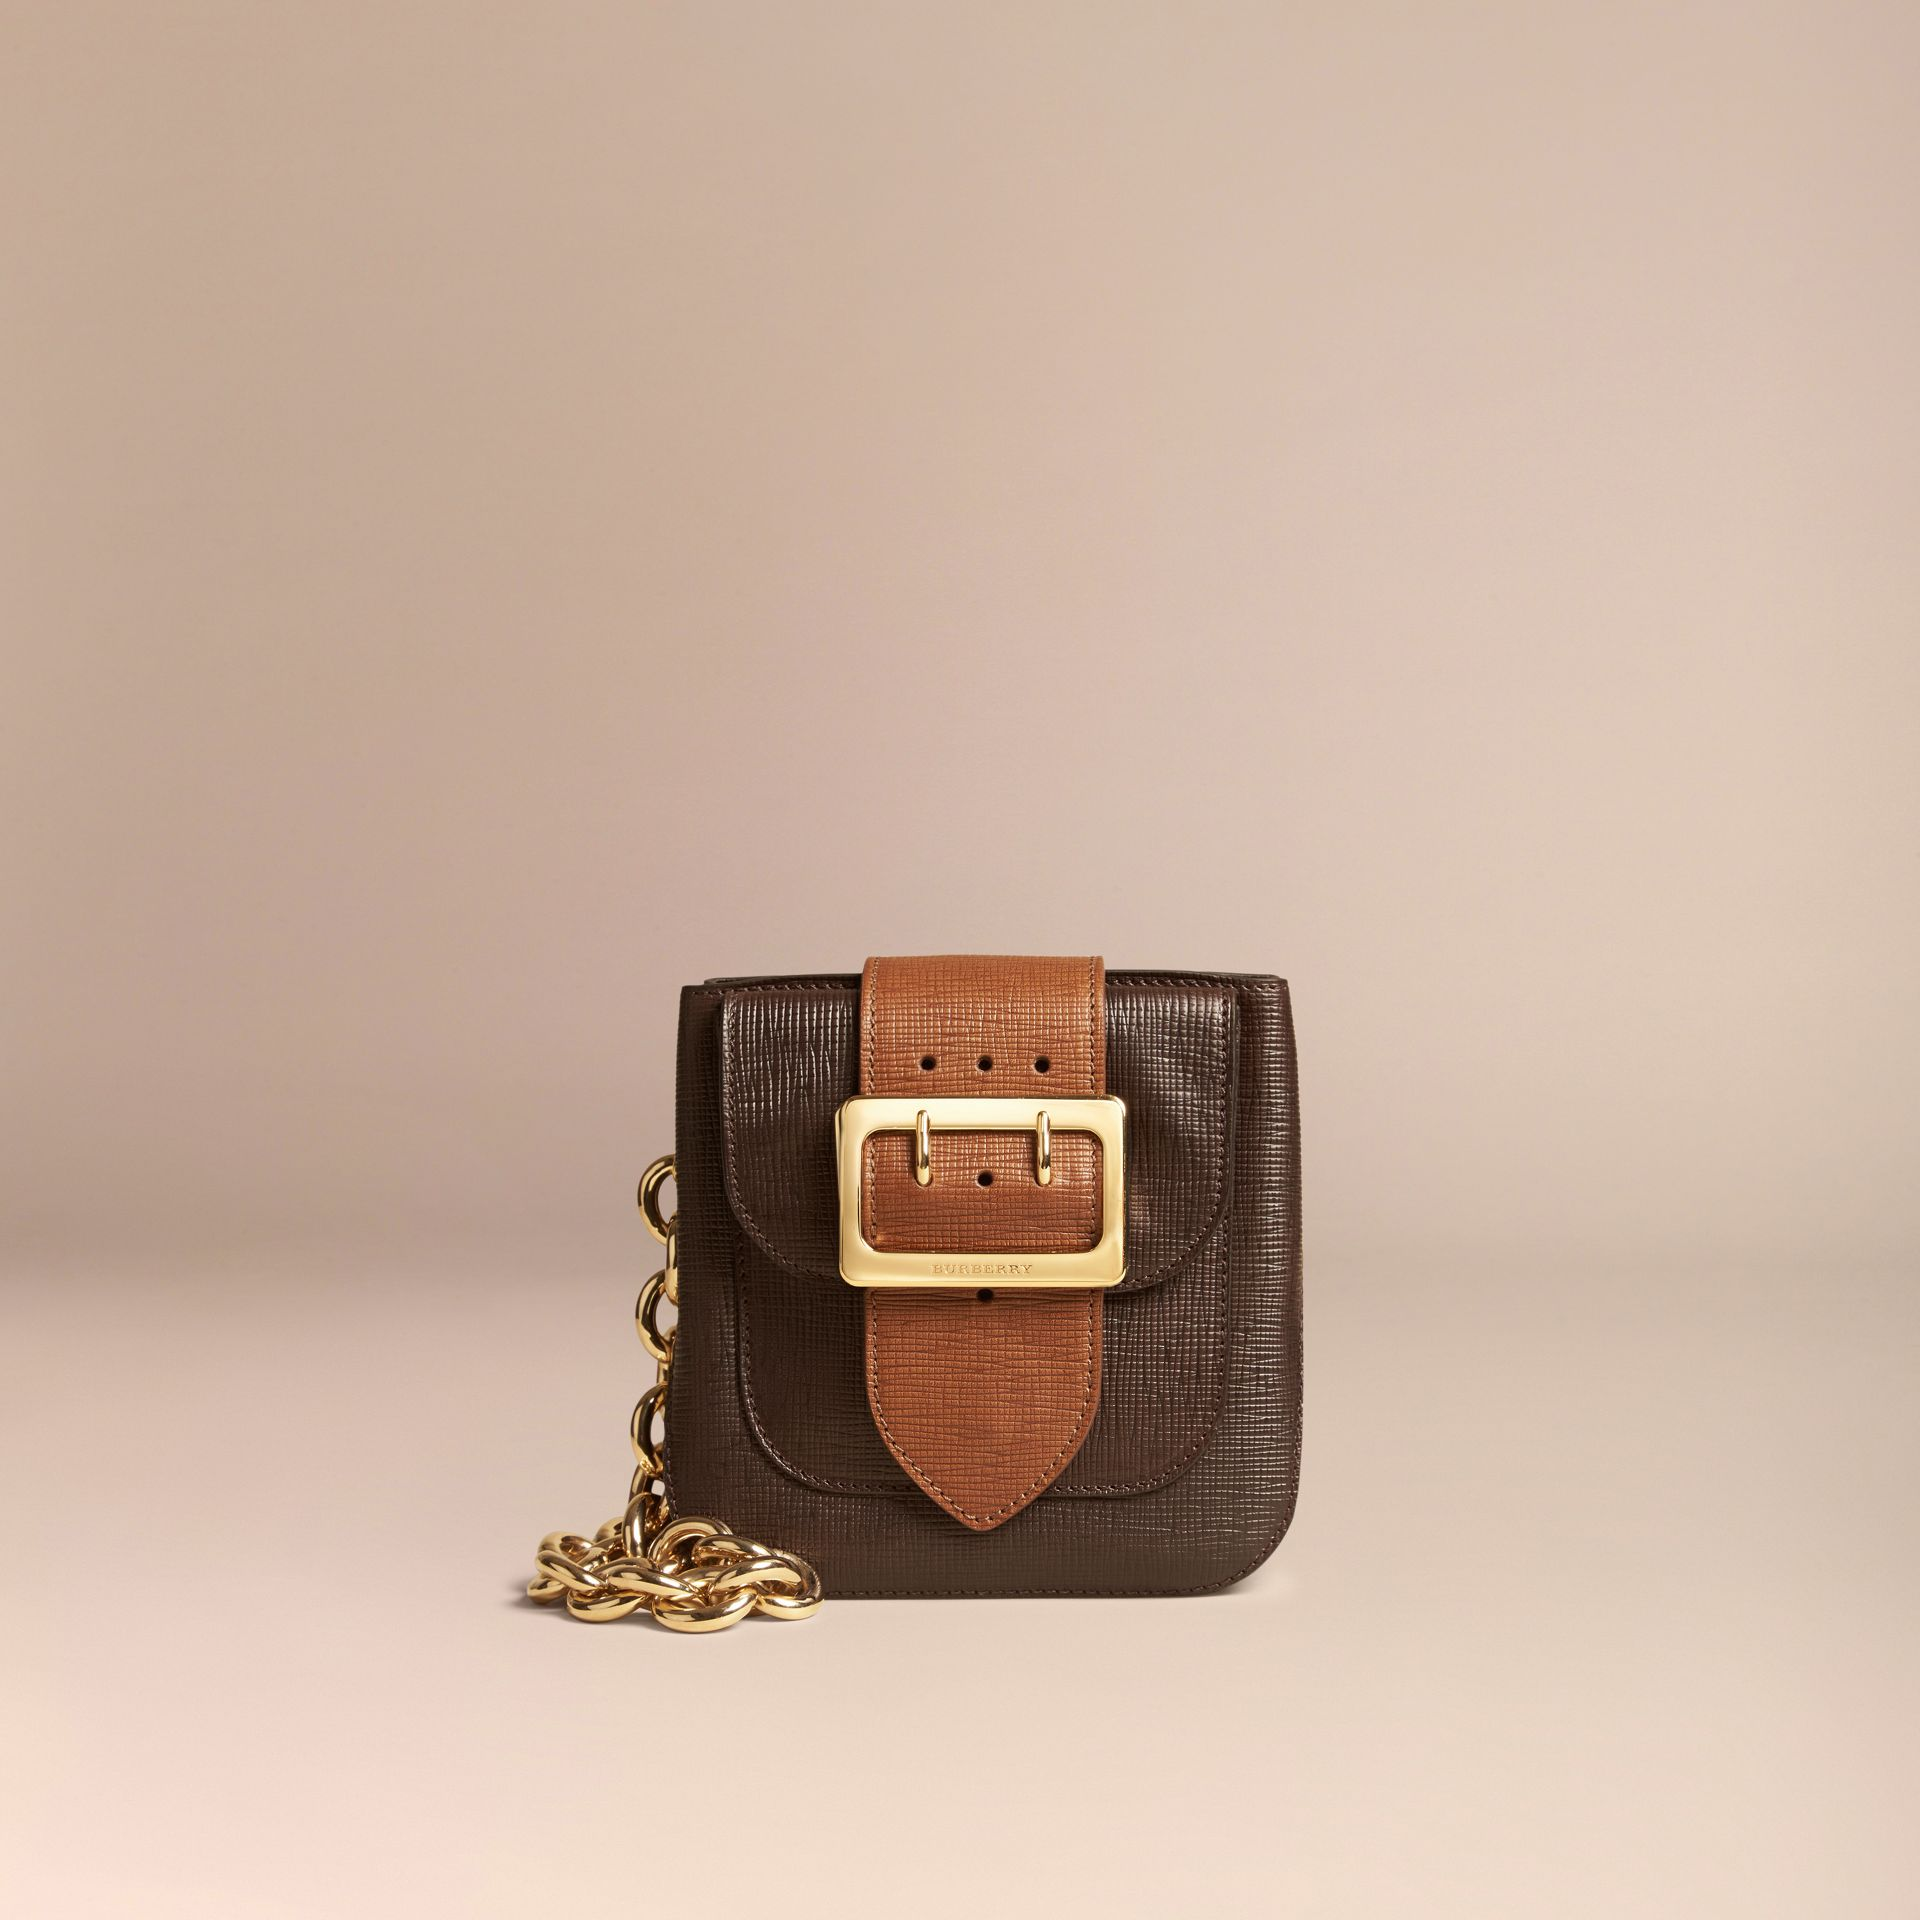 Dark clove brown The Small Square Buckle Bag in Textured Leather - gallery image 7